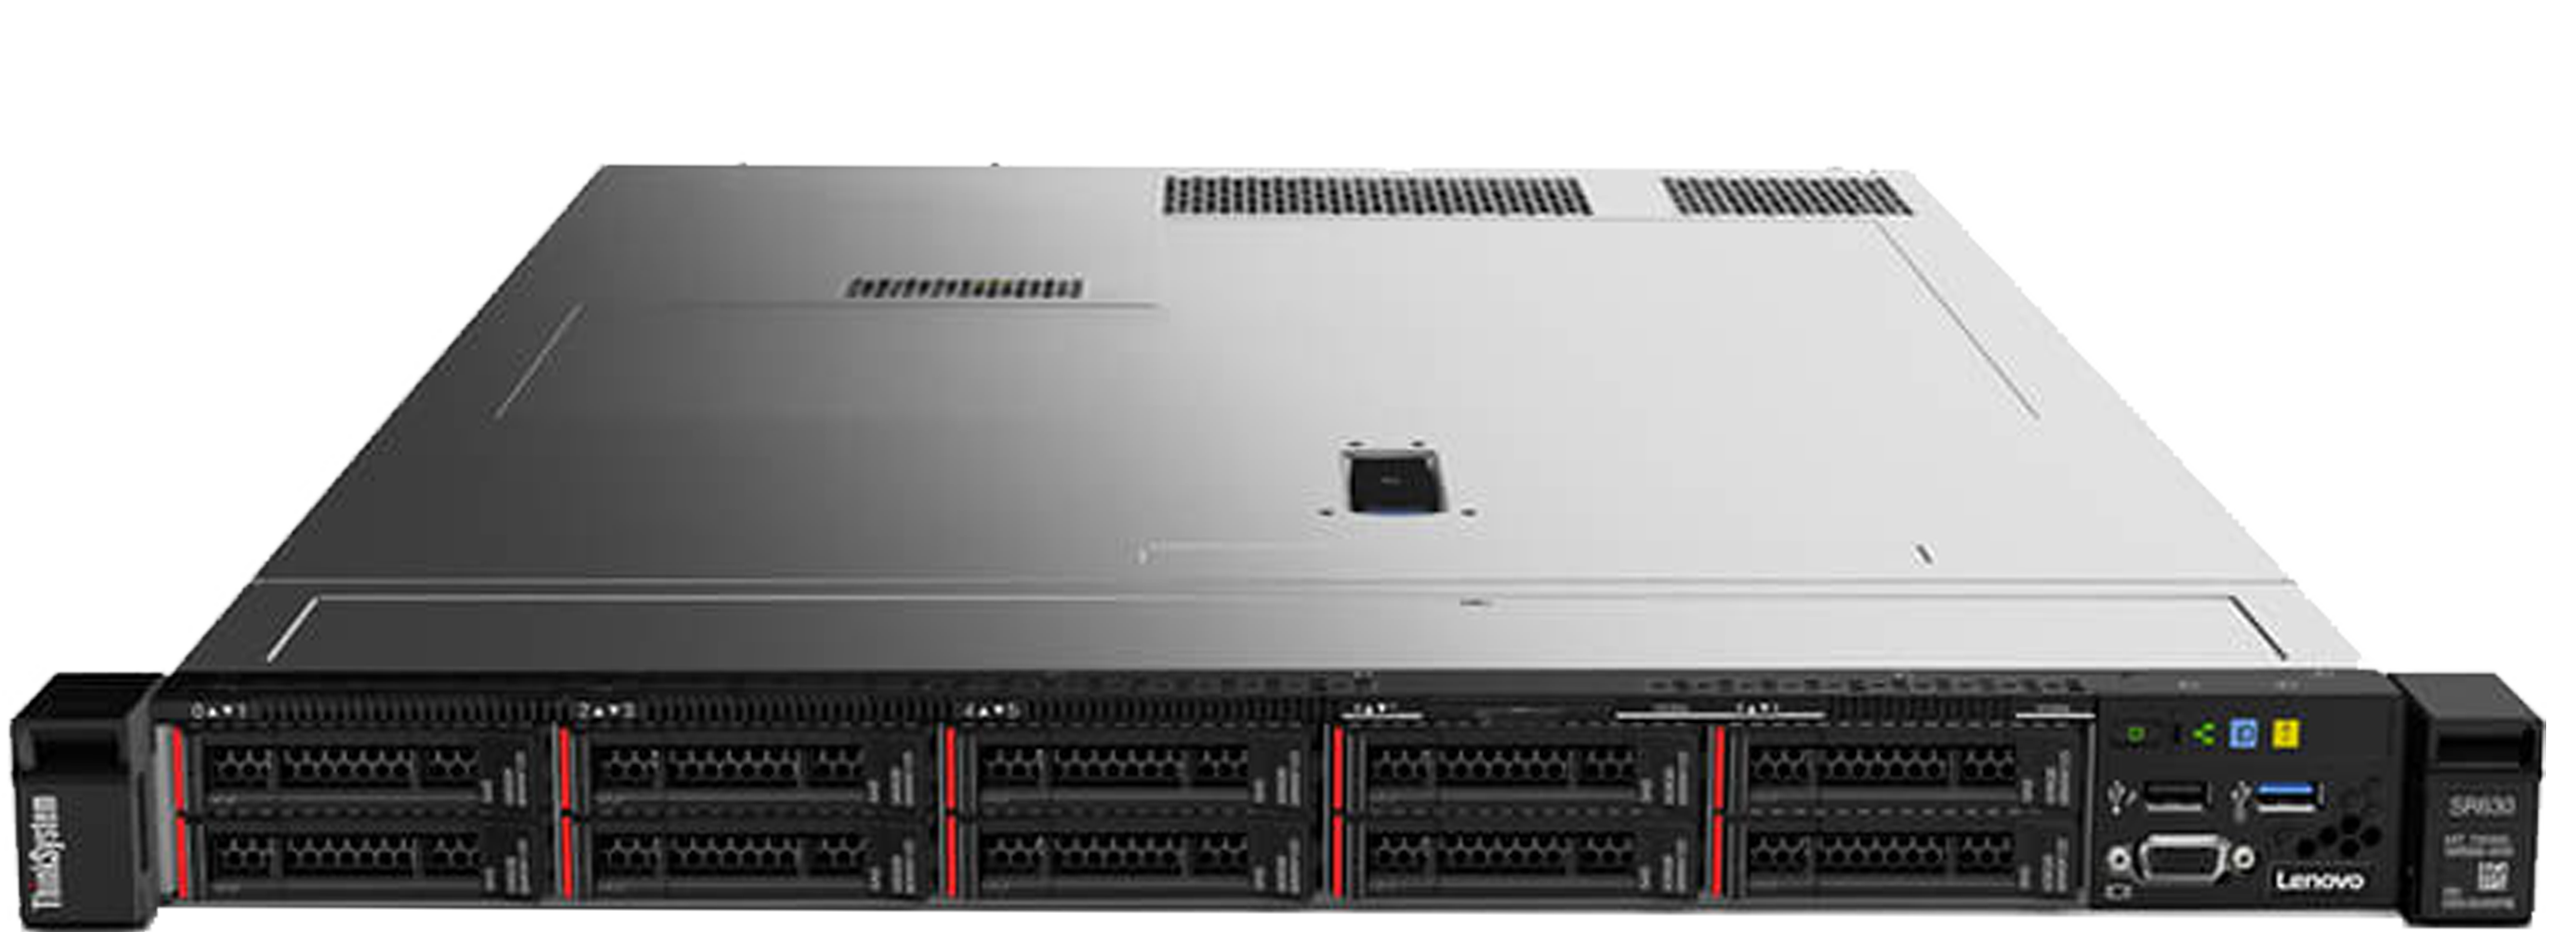 Hardware Appliance Platforms & OEM Servers | UNICOM Engineering